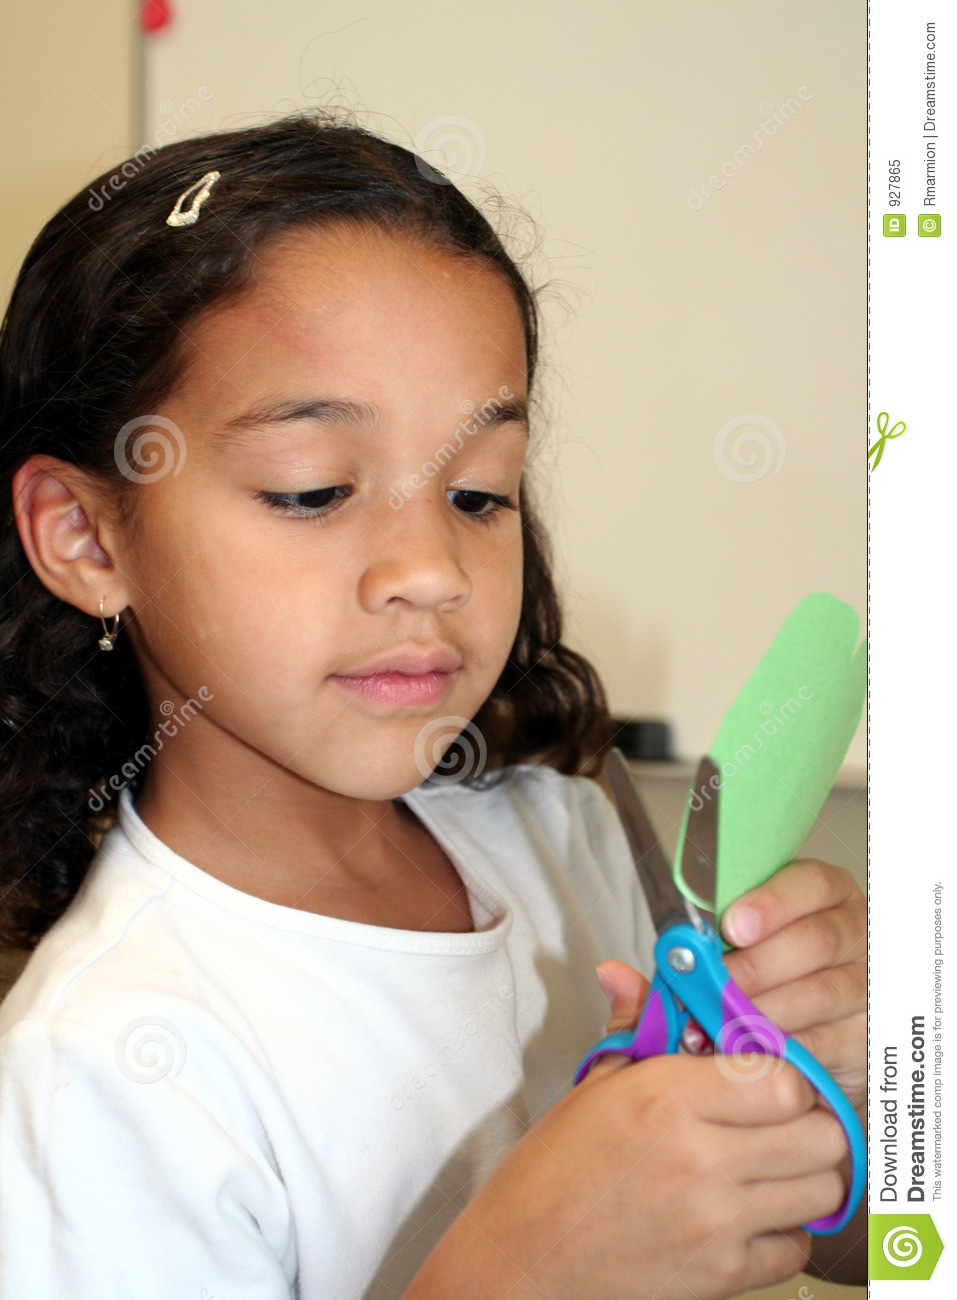 Young Girl Doing Crafts